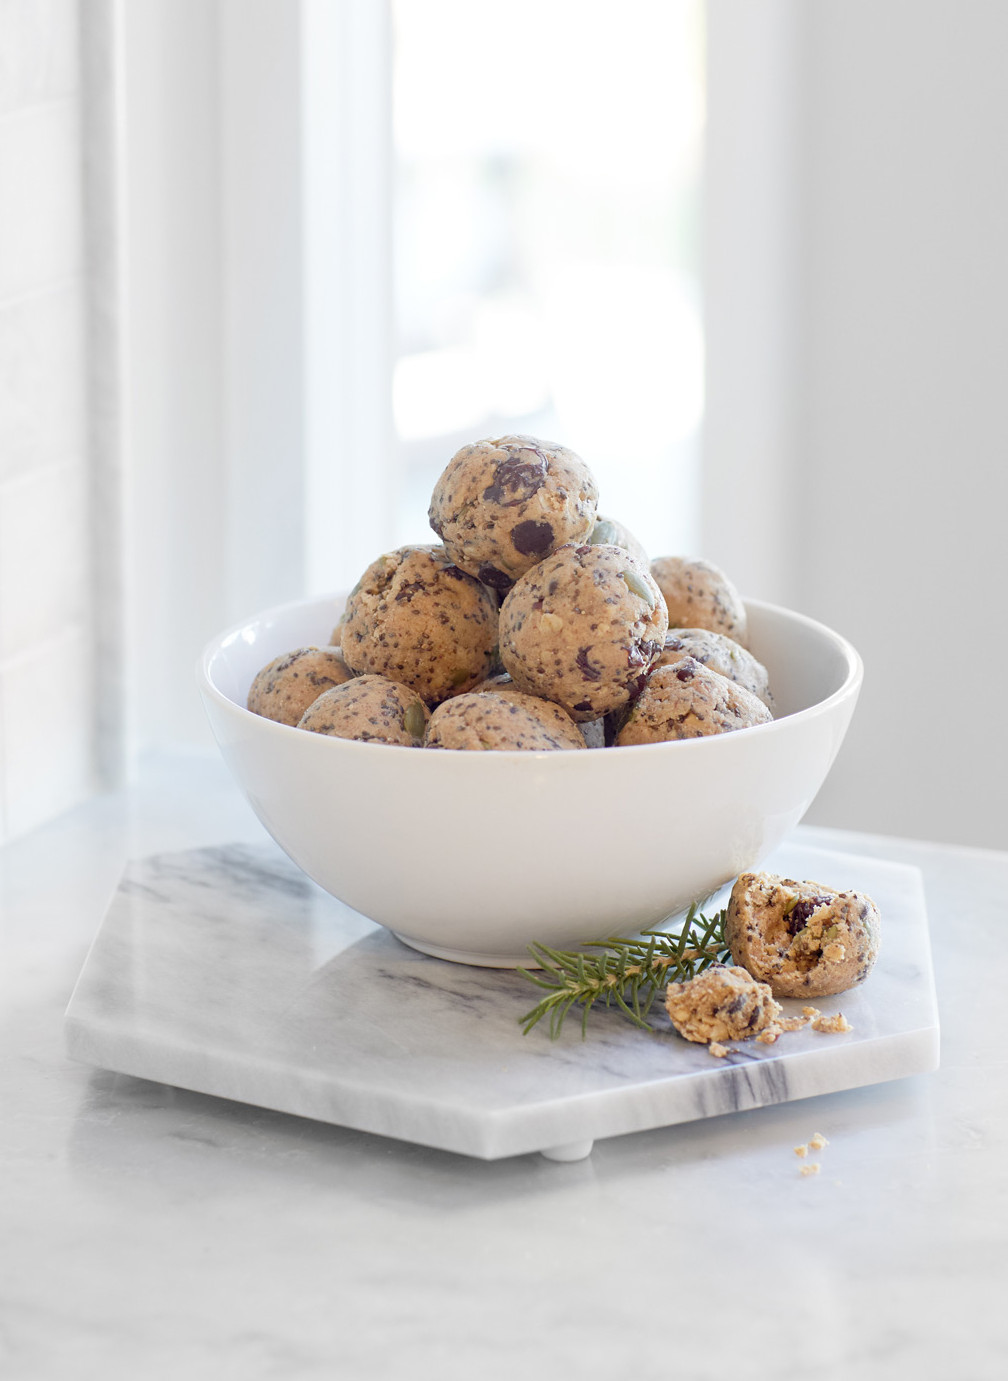 White bowl filled with raw energy balls